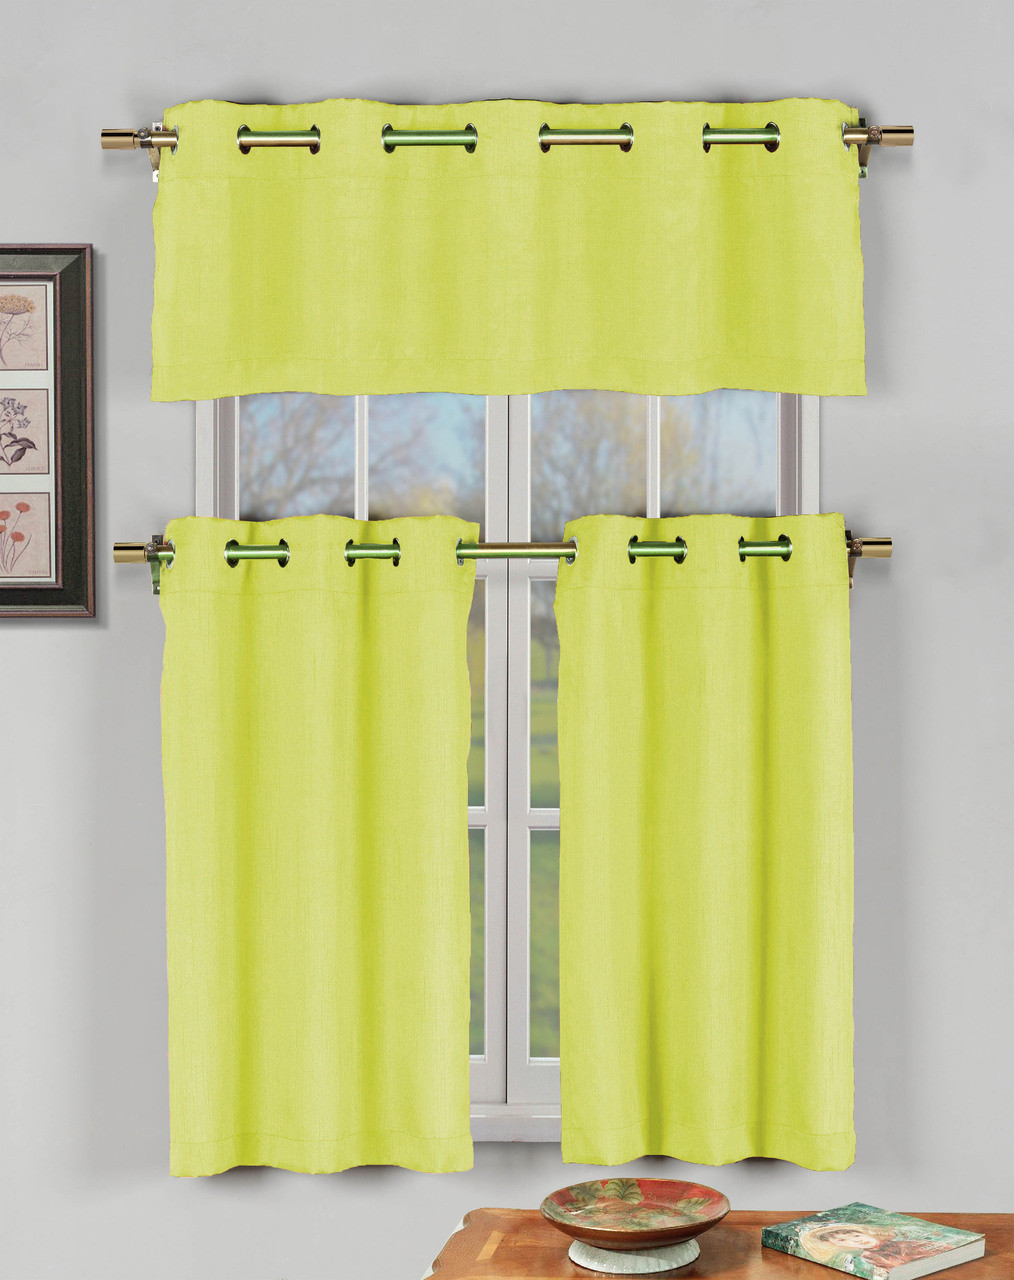 Yellow 3 Pc Kitchen Window Curtain Set with Silver Metal Grommets: 1  Valance, 2 Tier Panels